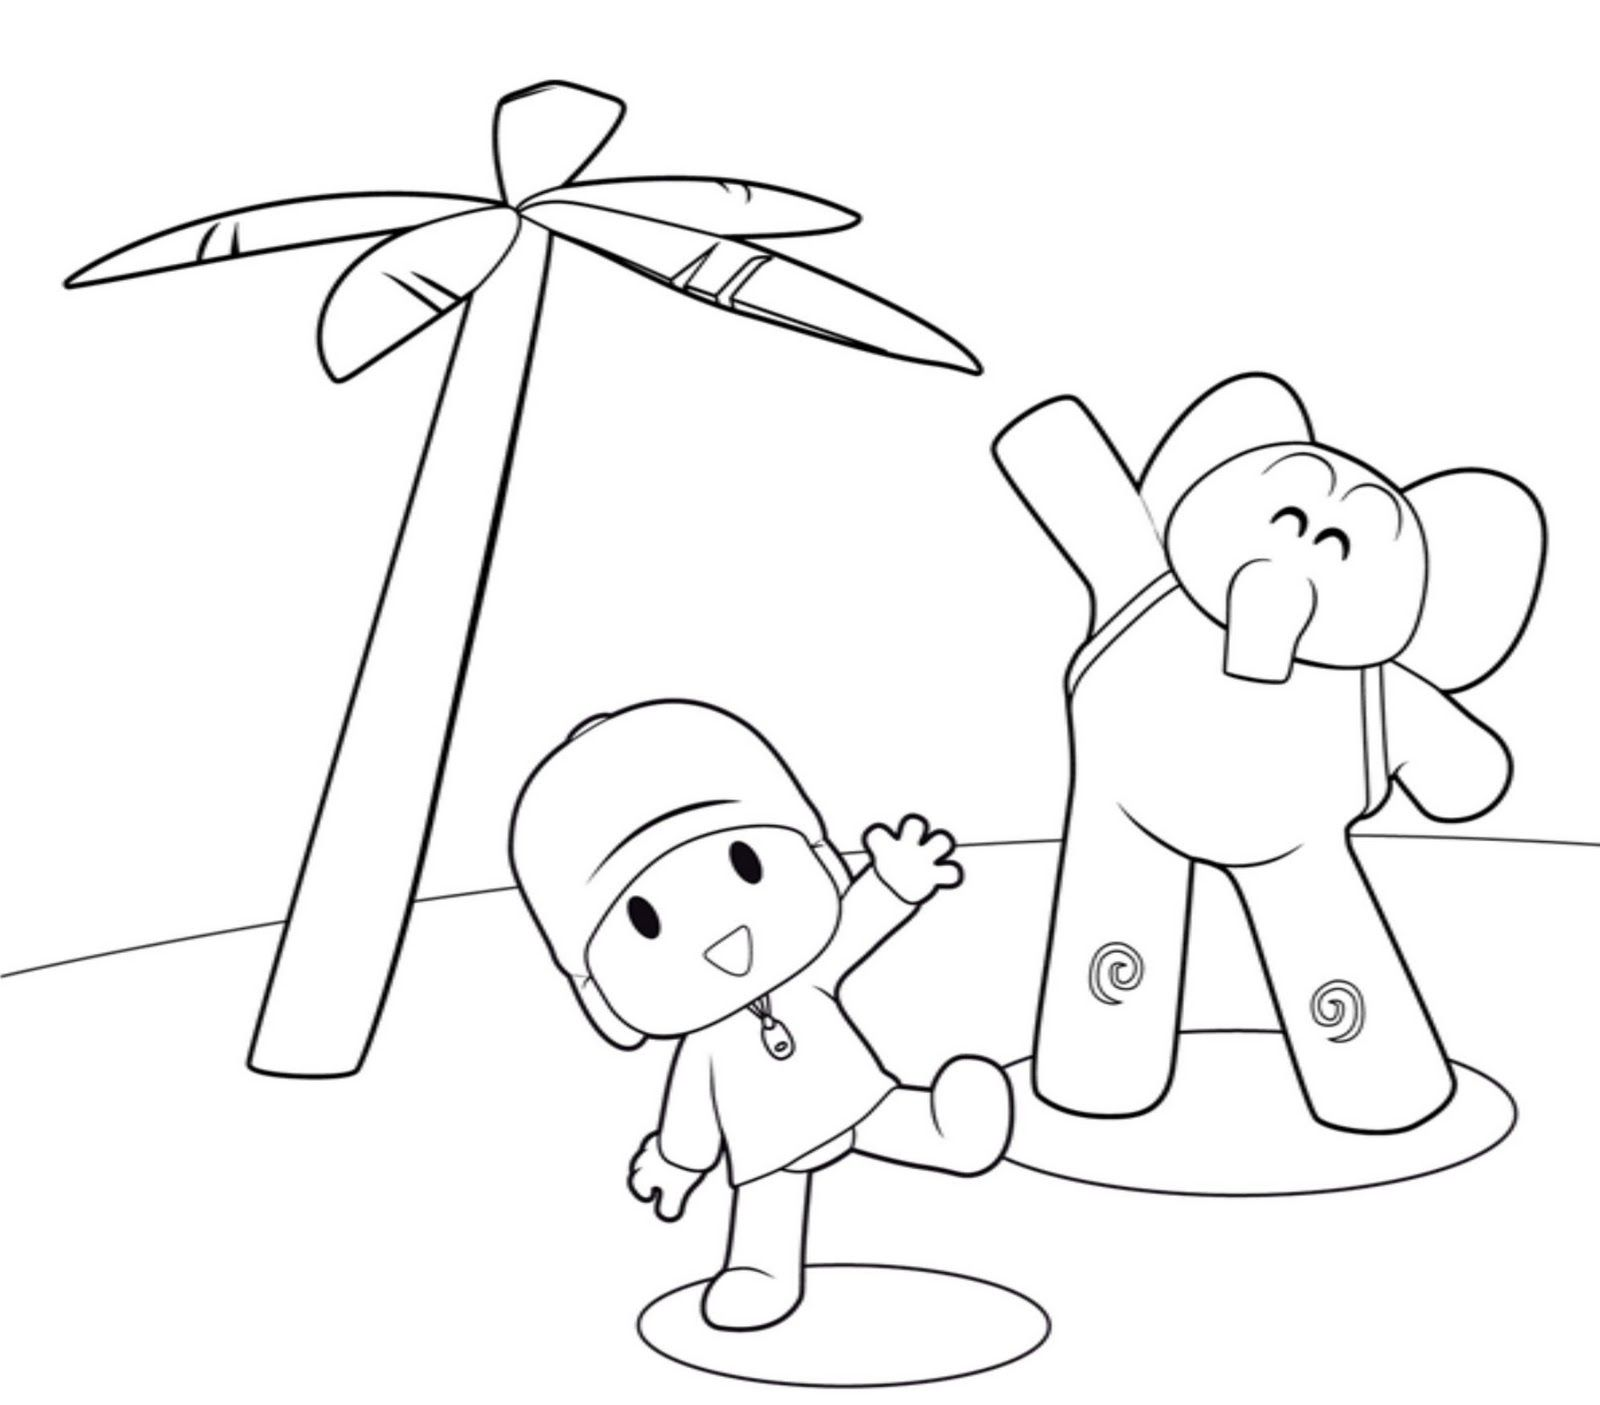 Free Printable Pocoyo Coloring Pages For Kids Coloring